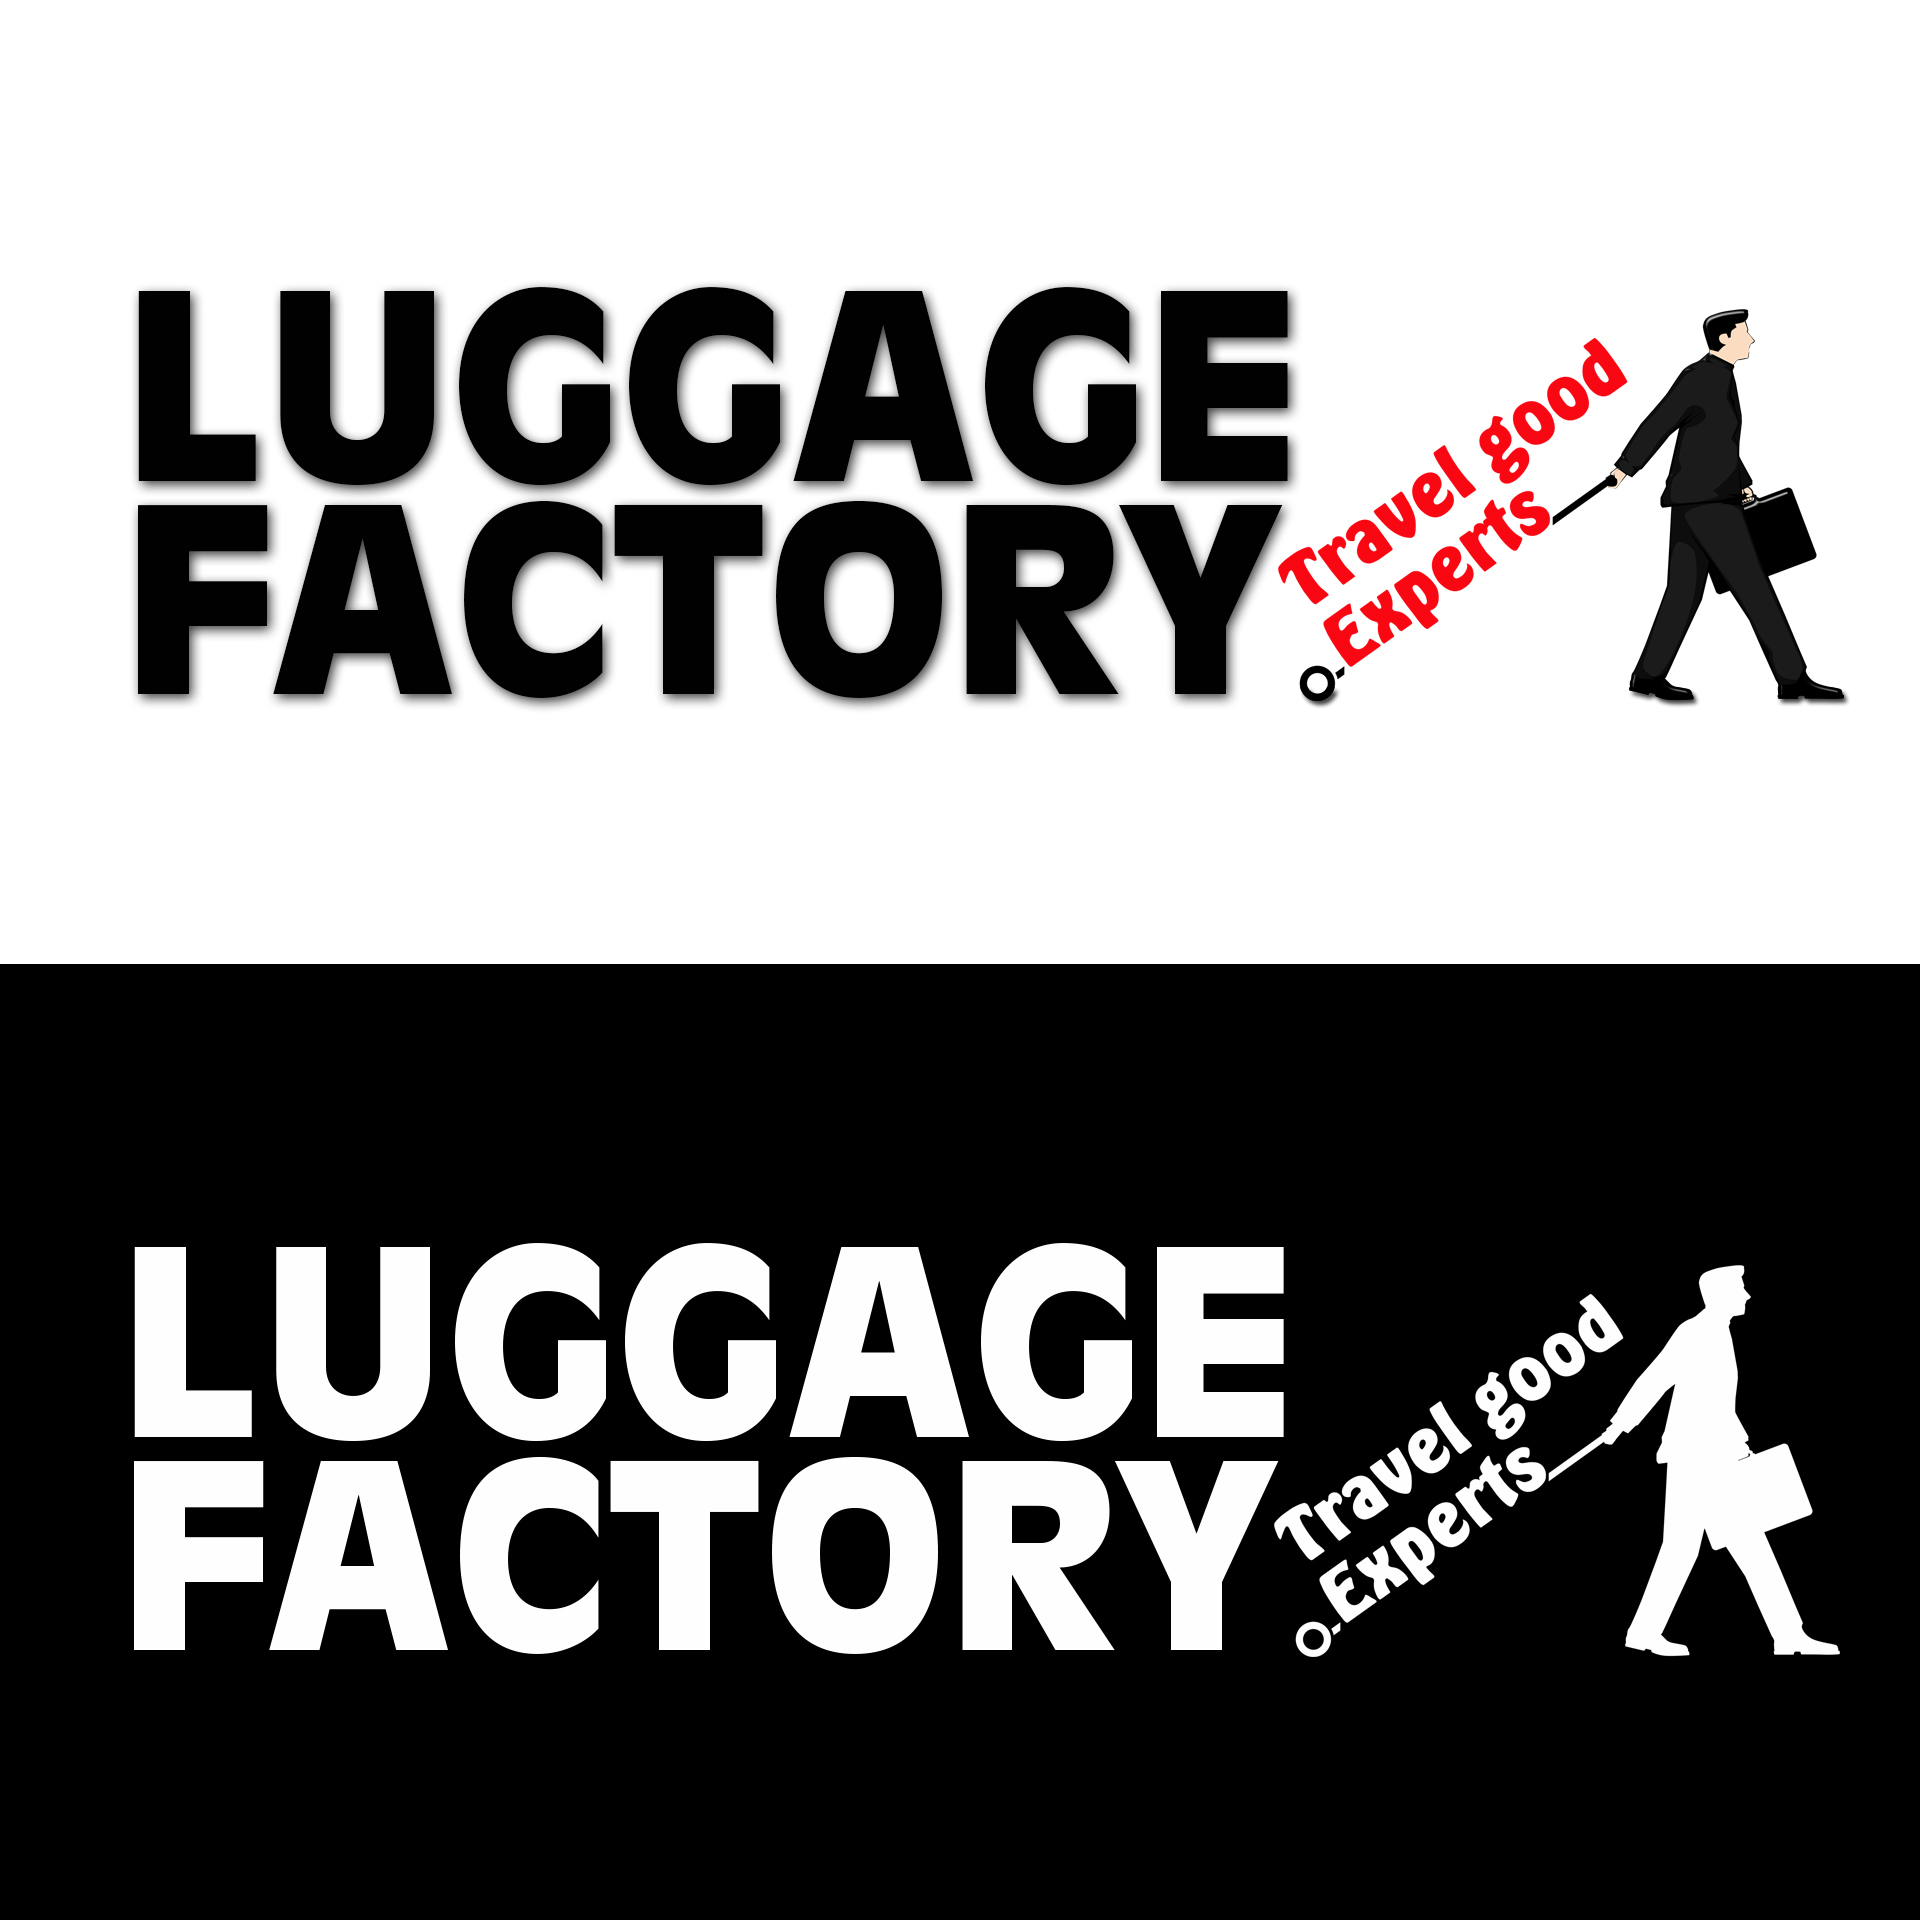 Logo Design by chAnDOS - Entry No. 106 in the Logo Design Contest Creative Logo Design for Luggage Factory.